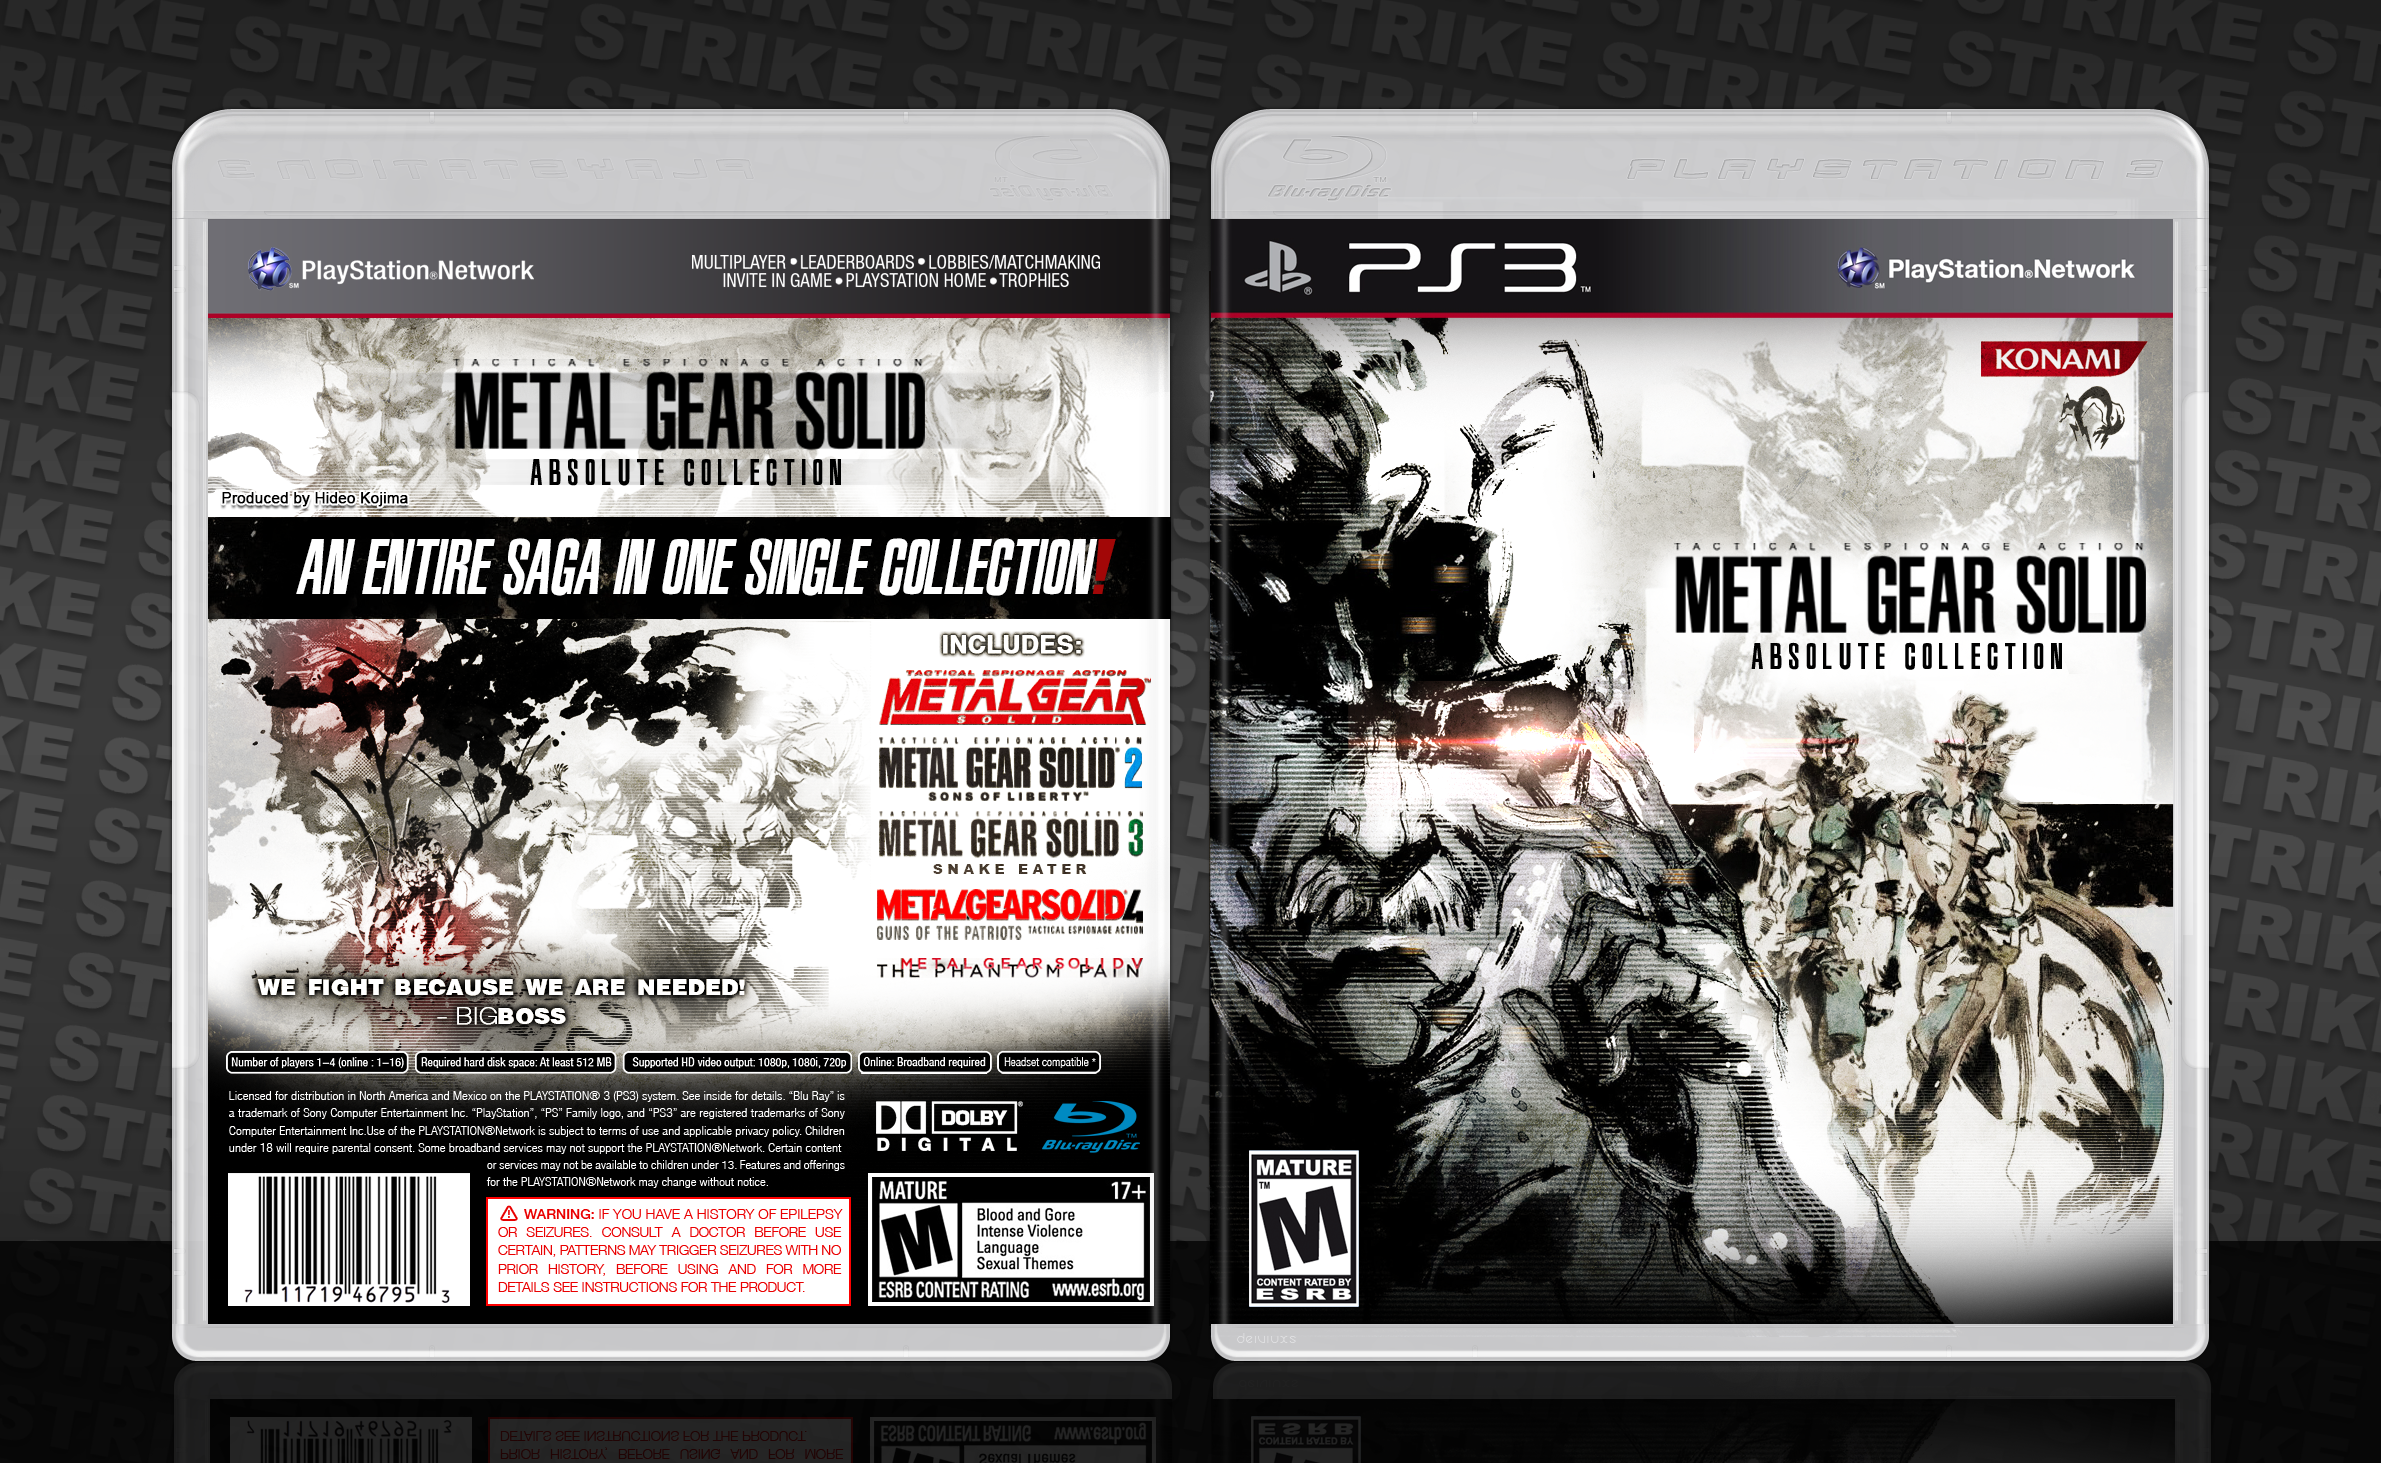 Metal Gear Solid: Absolute Collection box cover